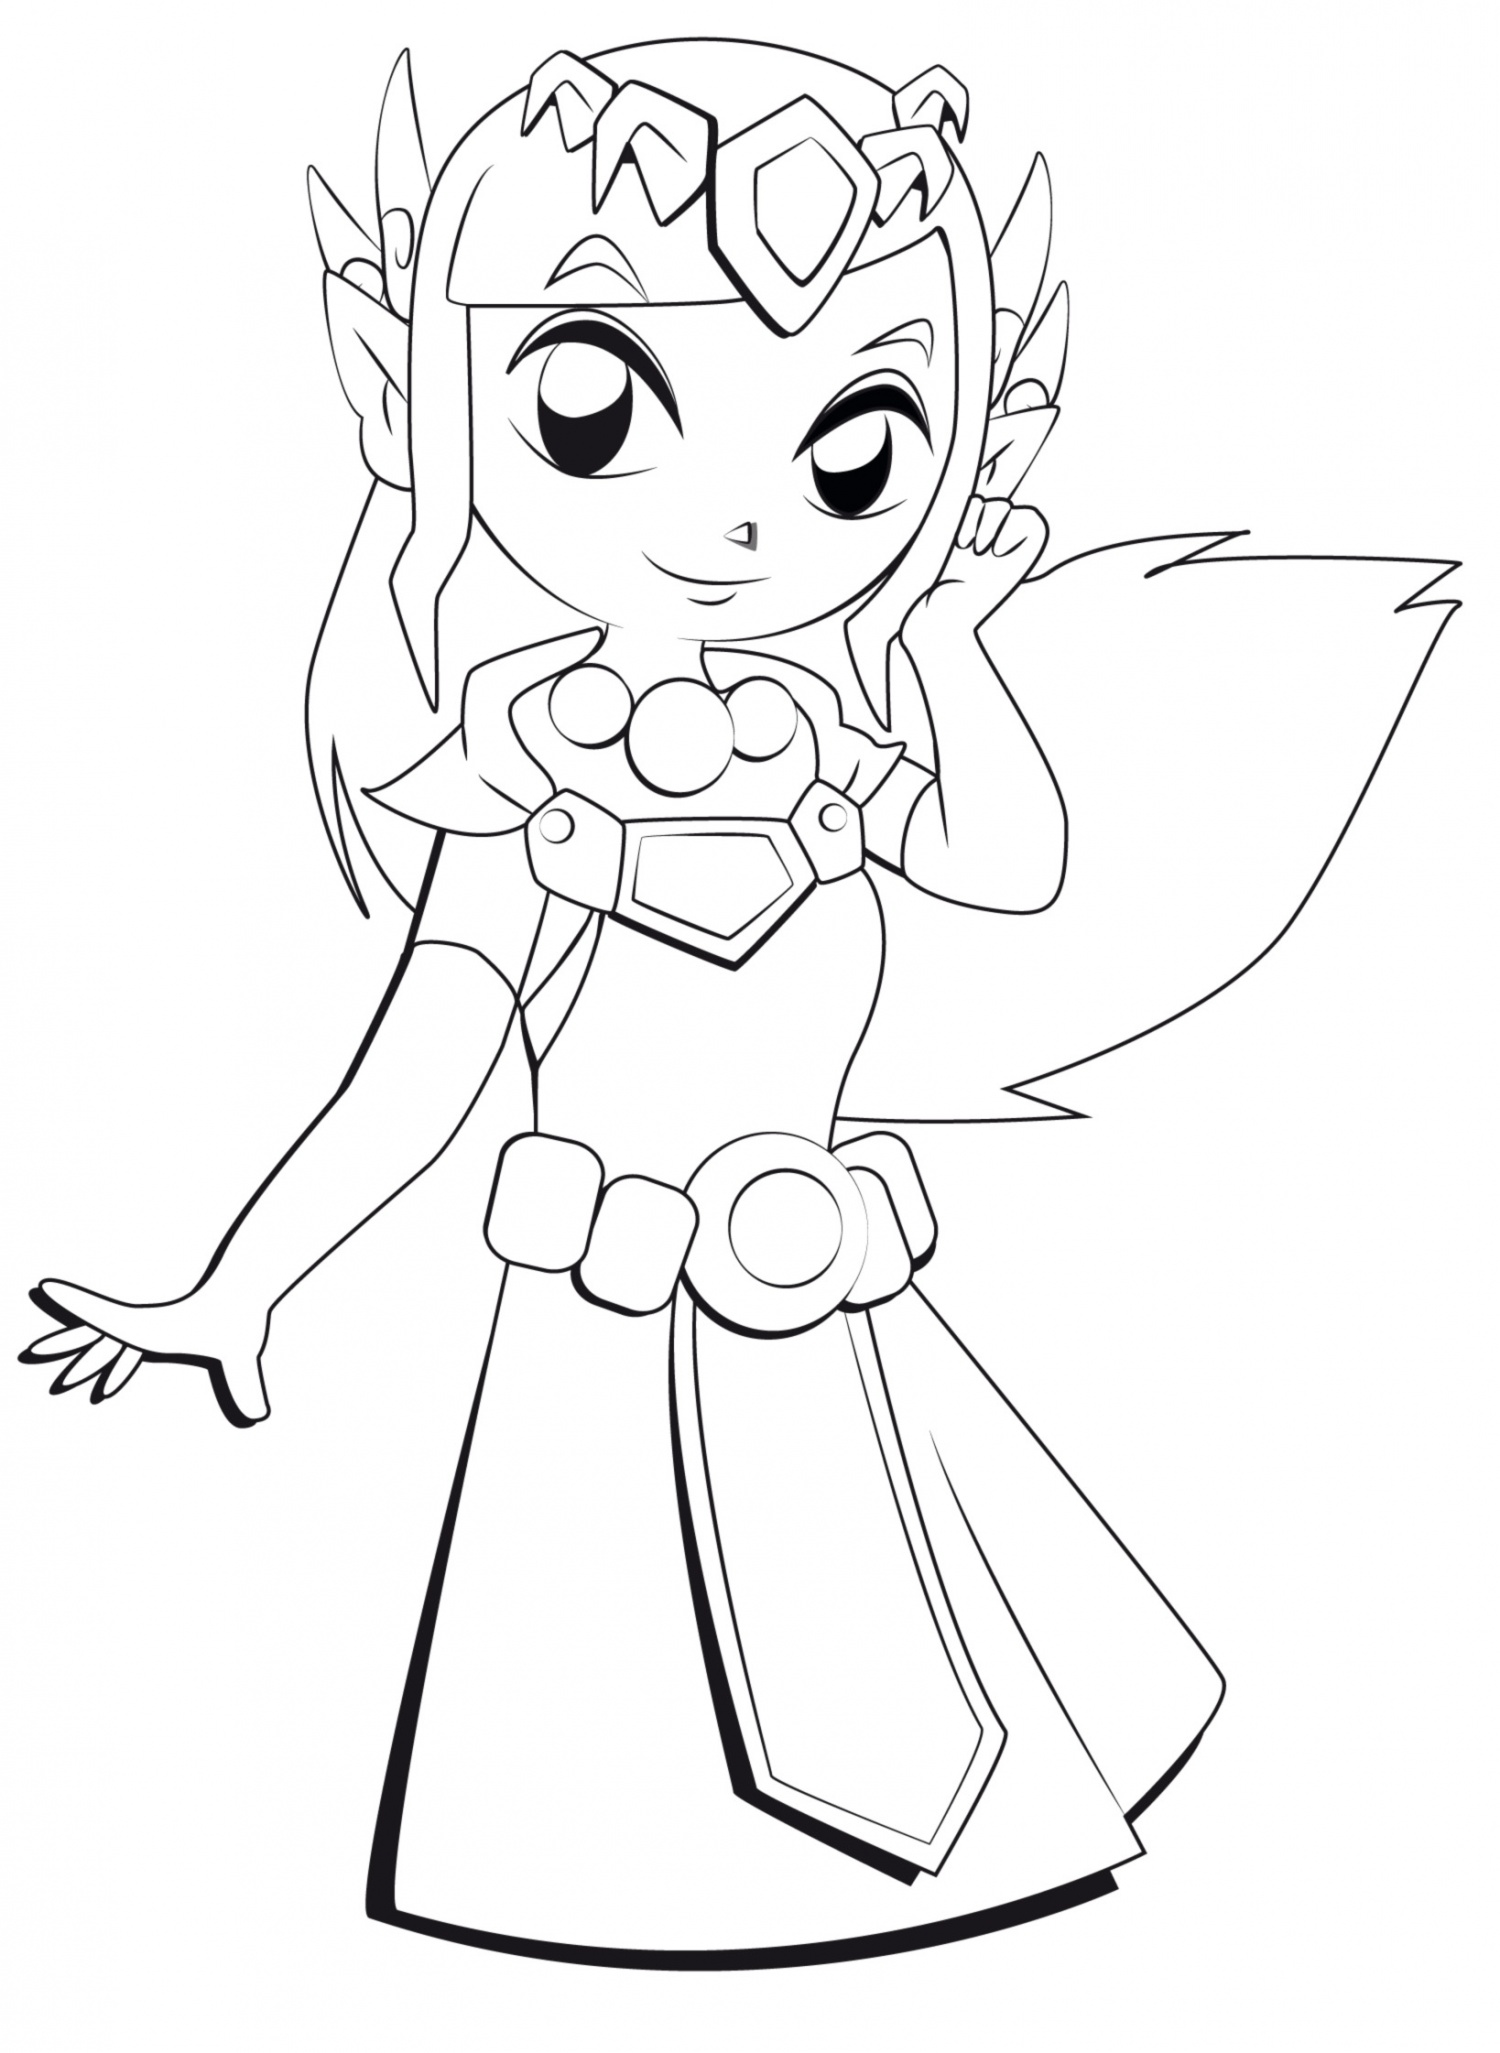 Zelda coloring page with few details for kids